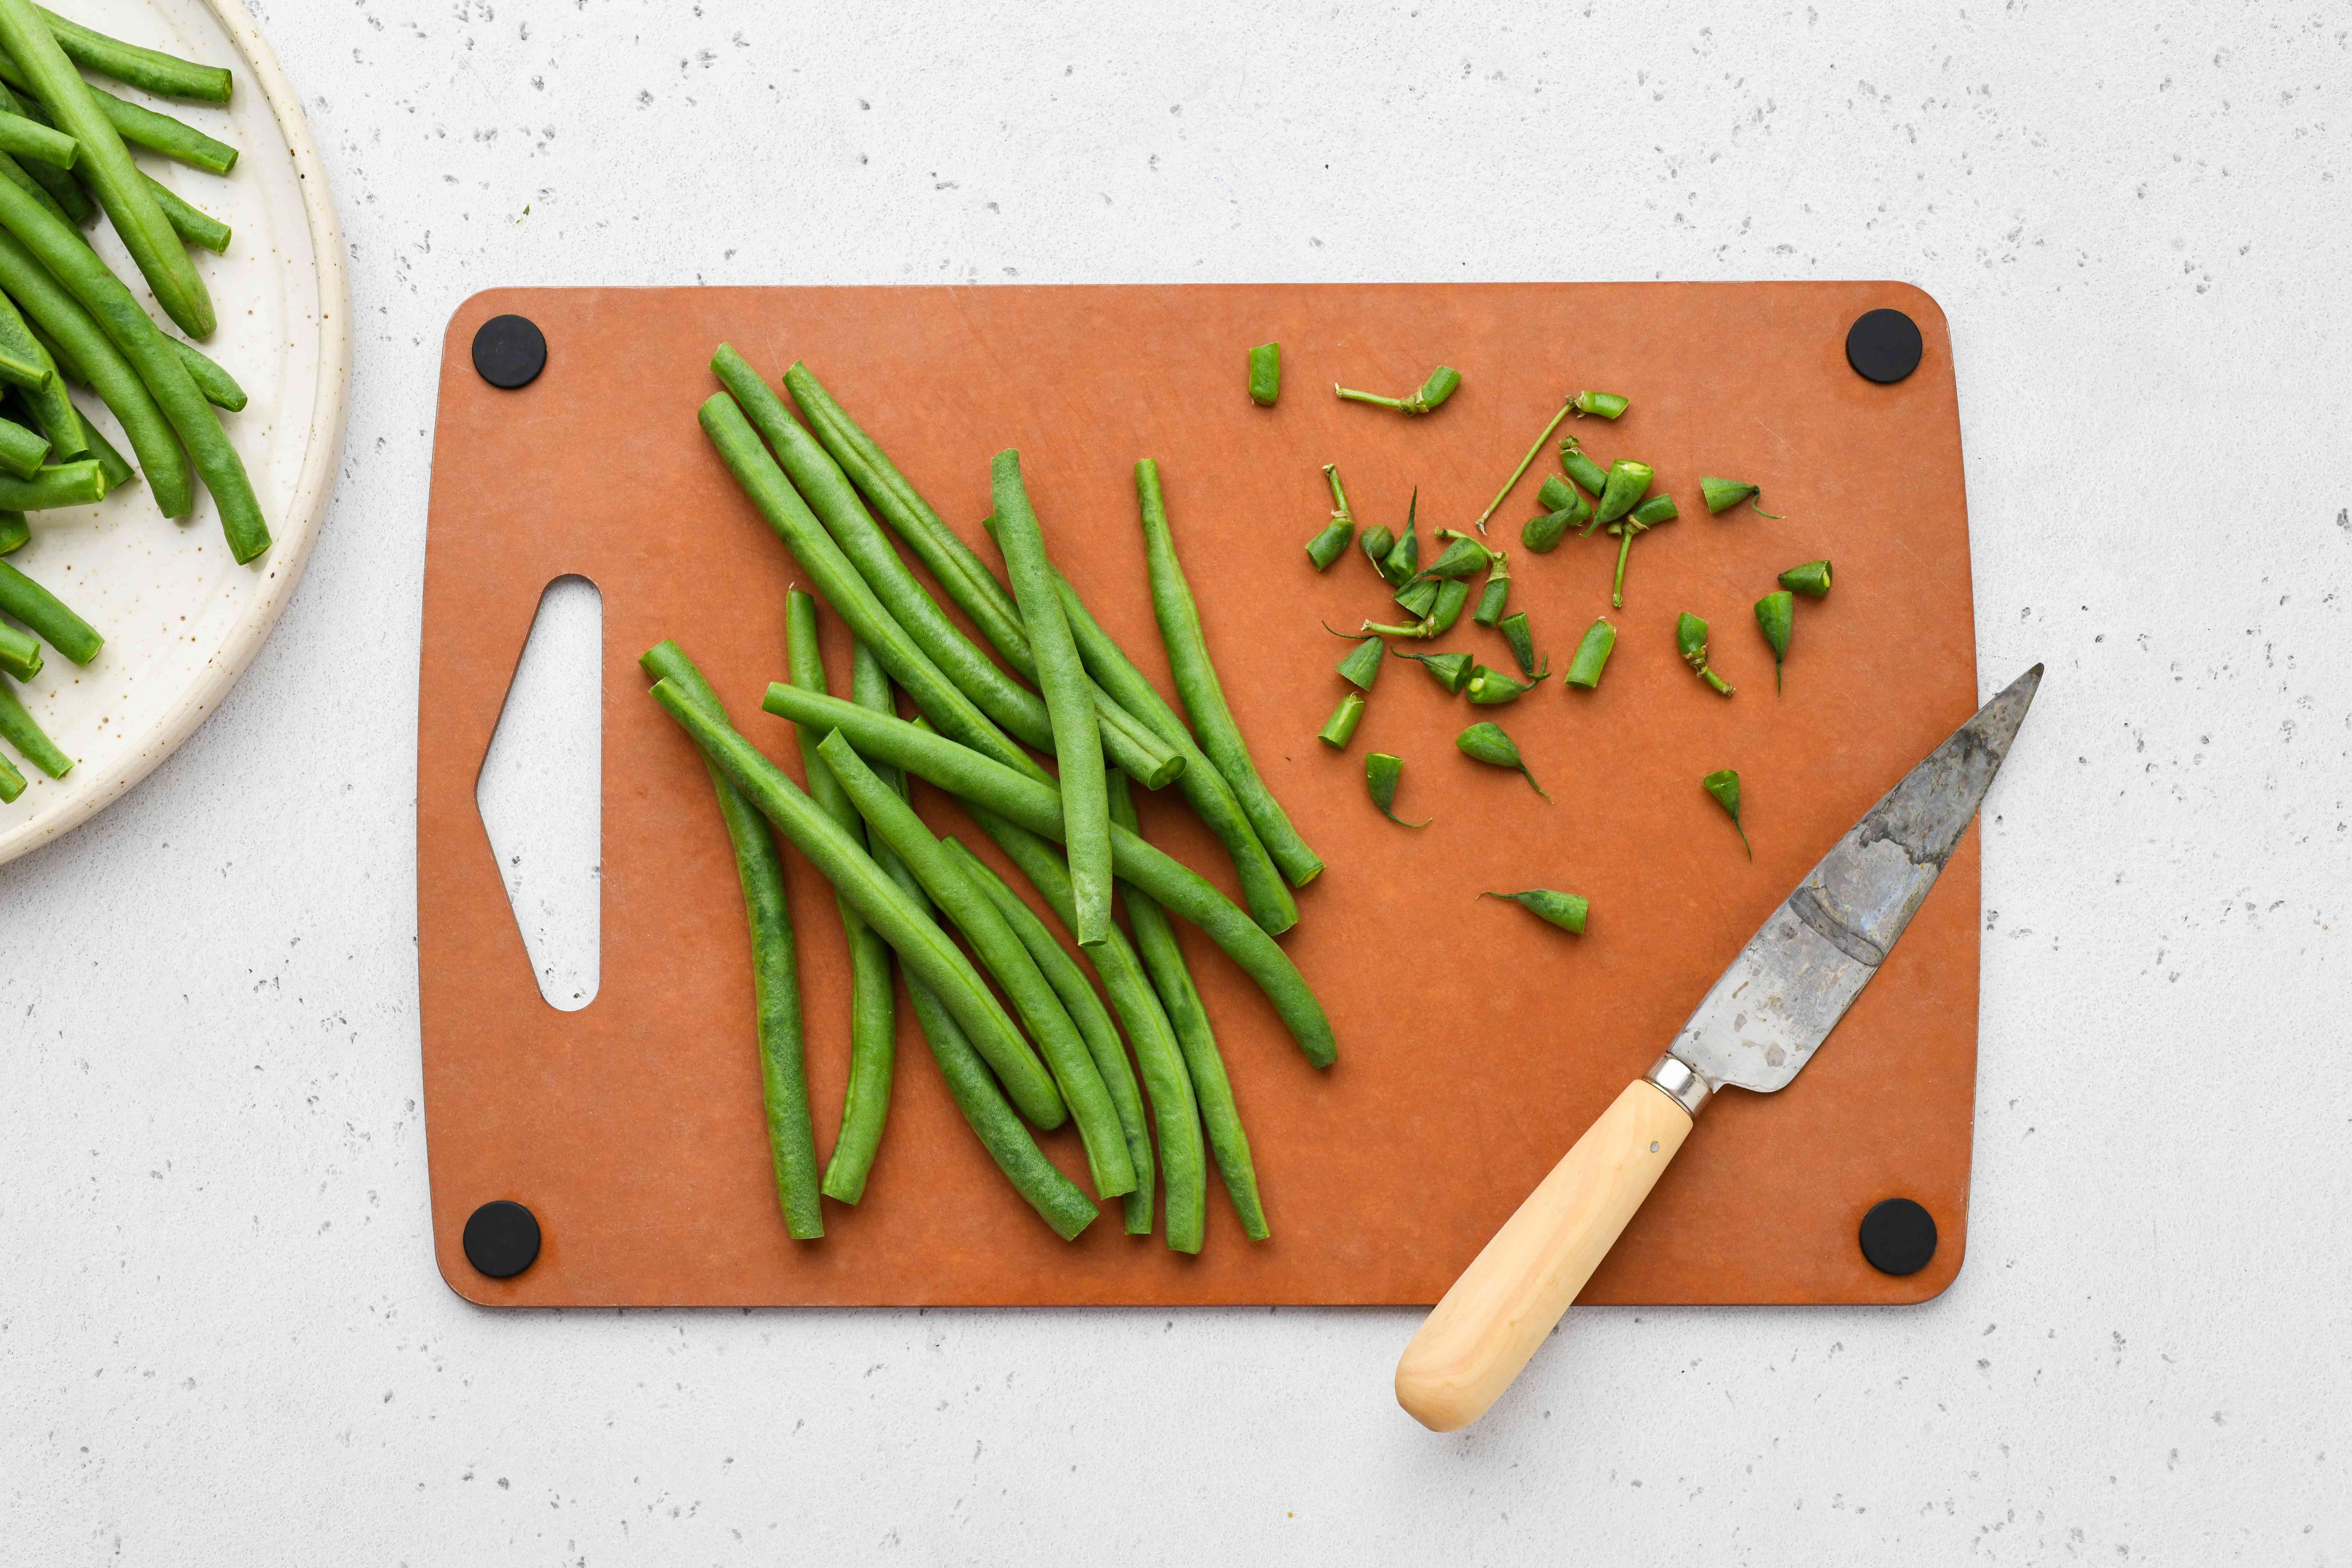 Trim the ends of the green beans on a cutting board